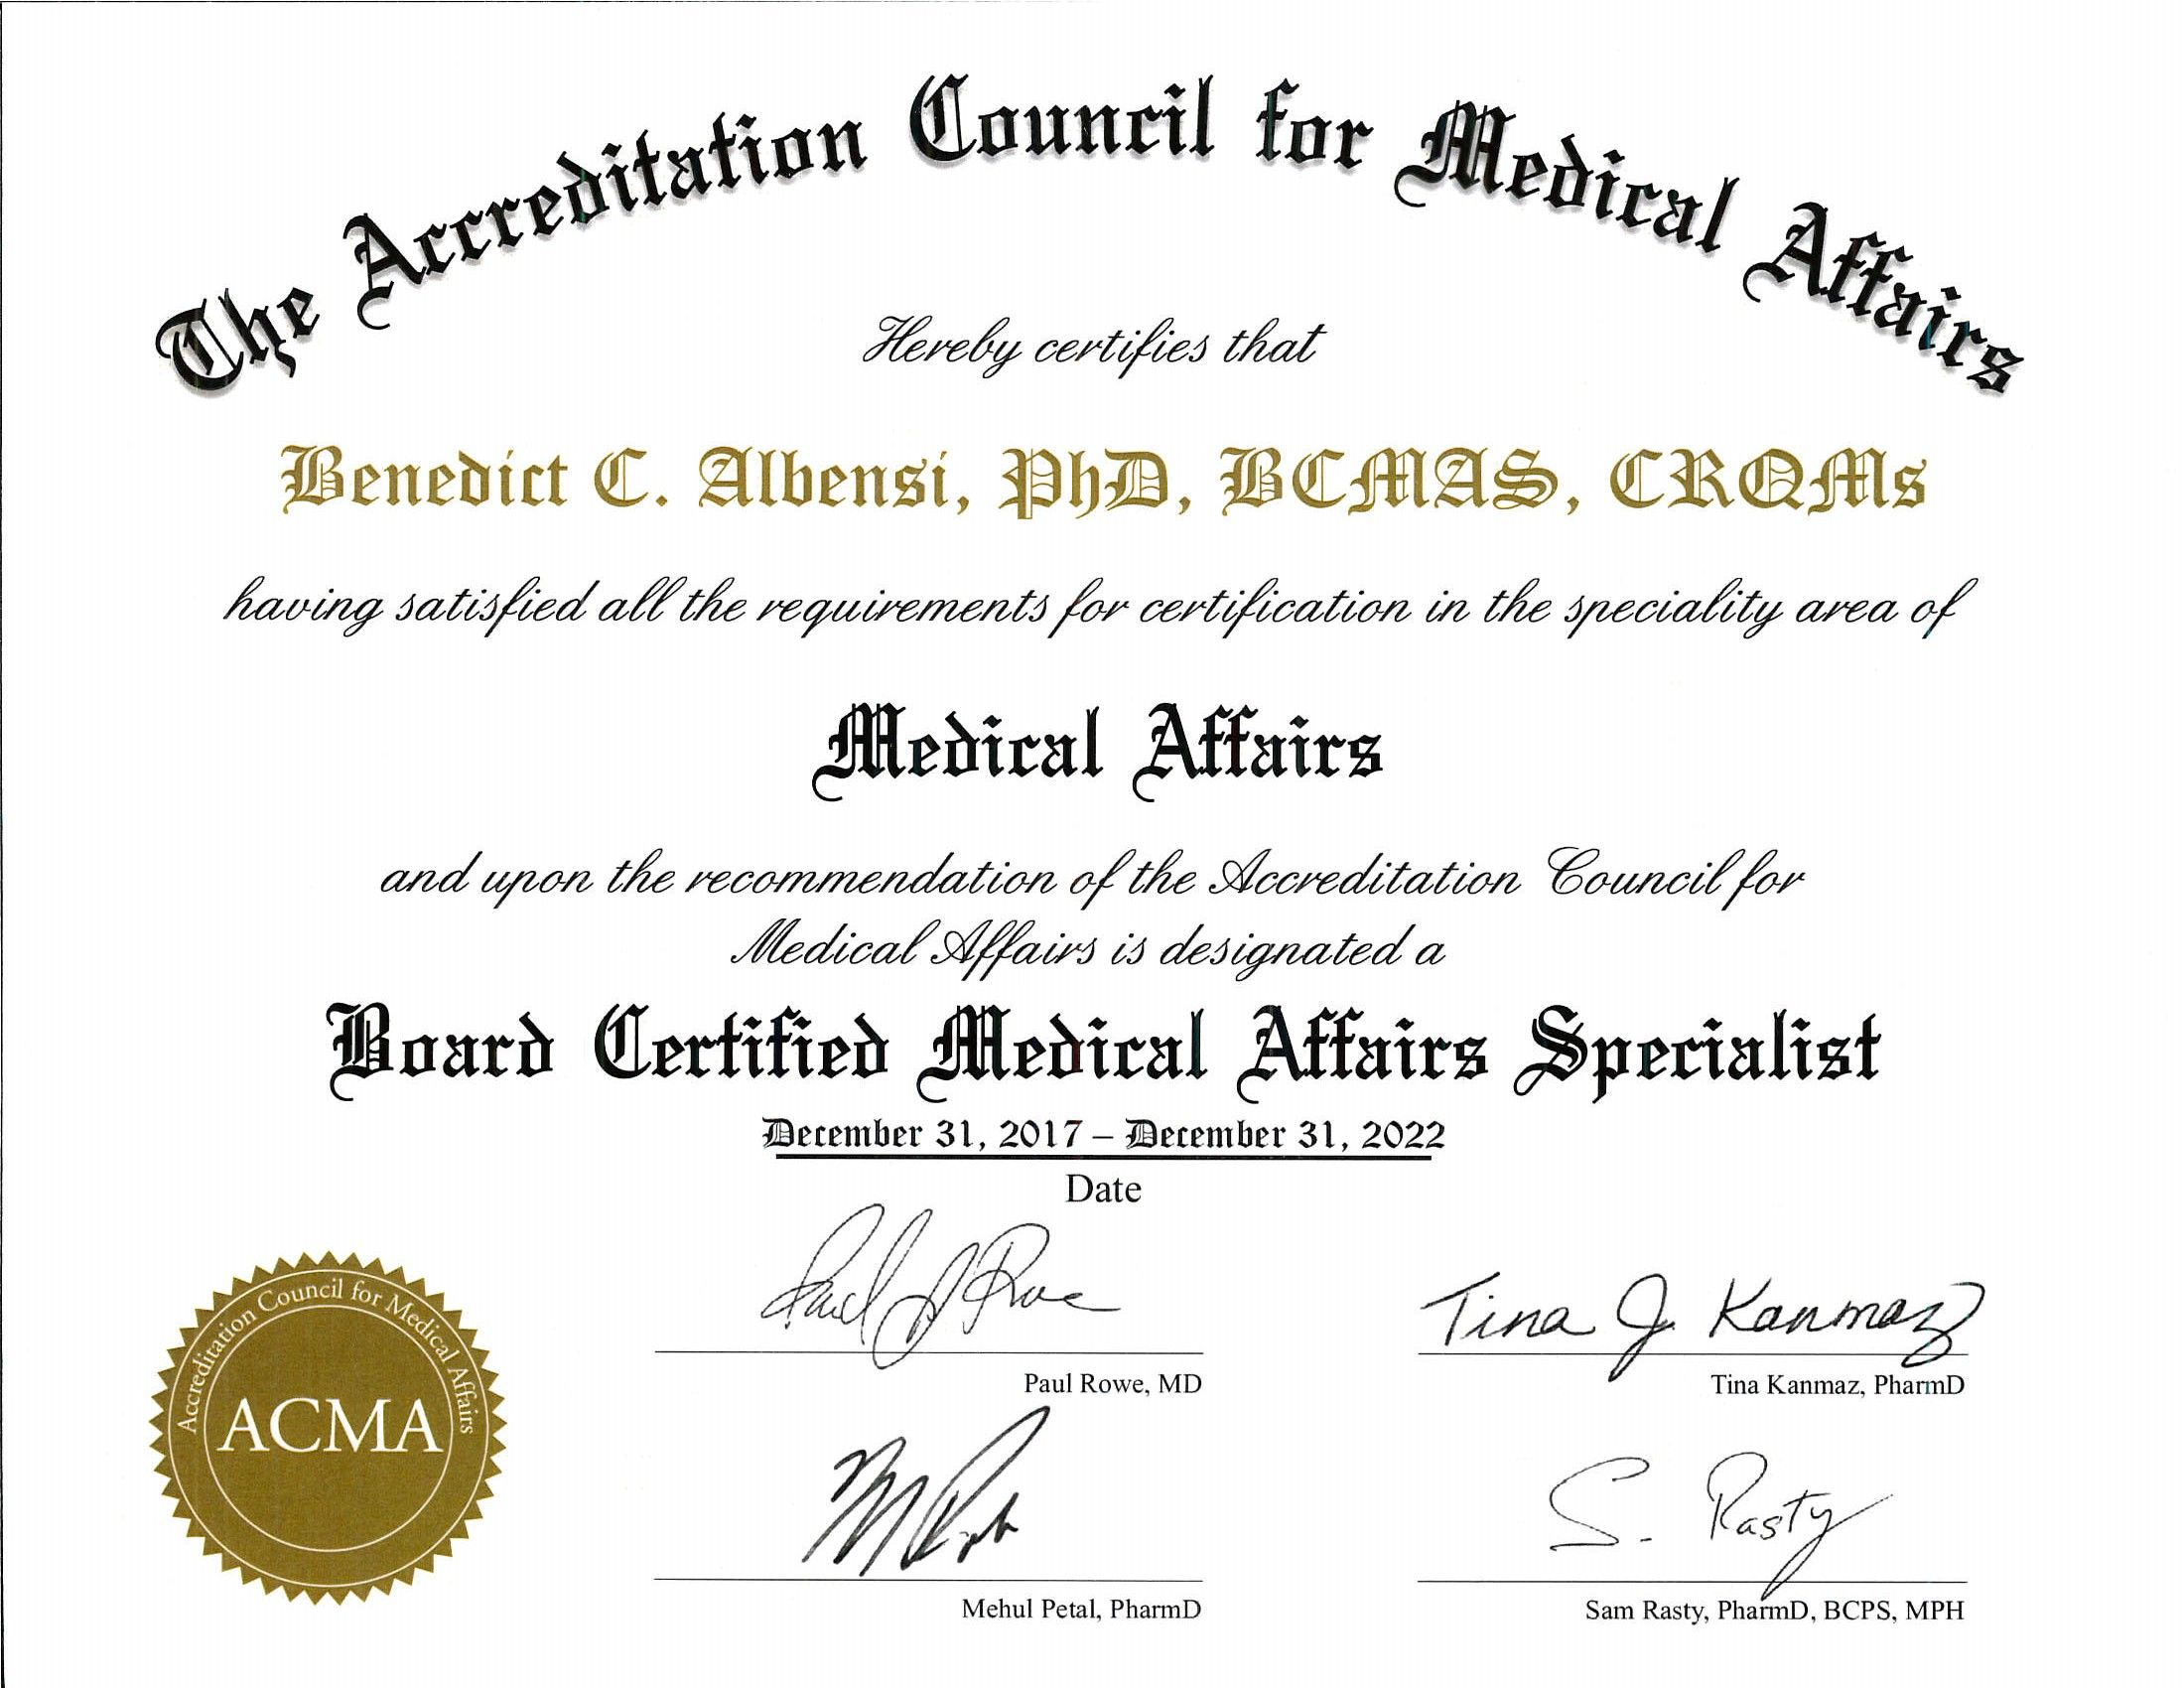 Board Certification In Medical Affairs From Acma In Ny Ny Dr